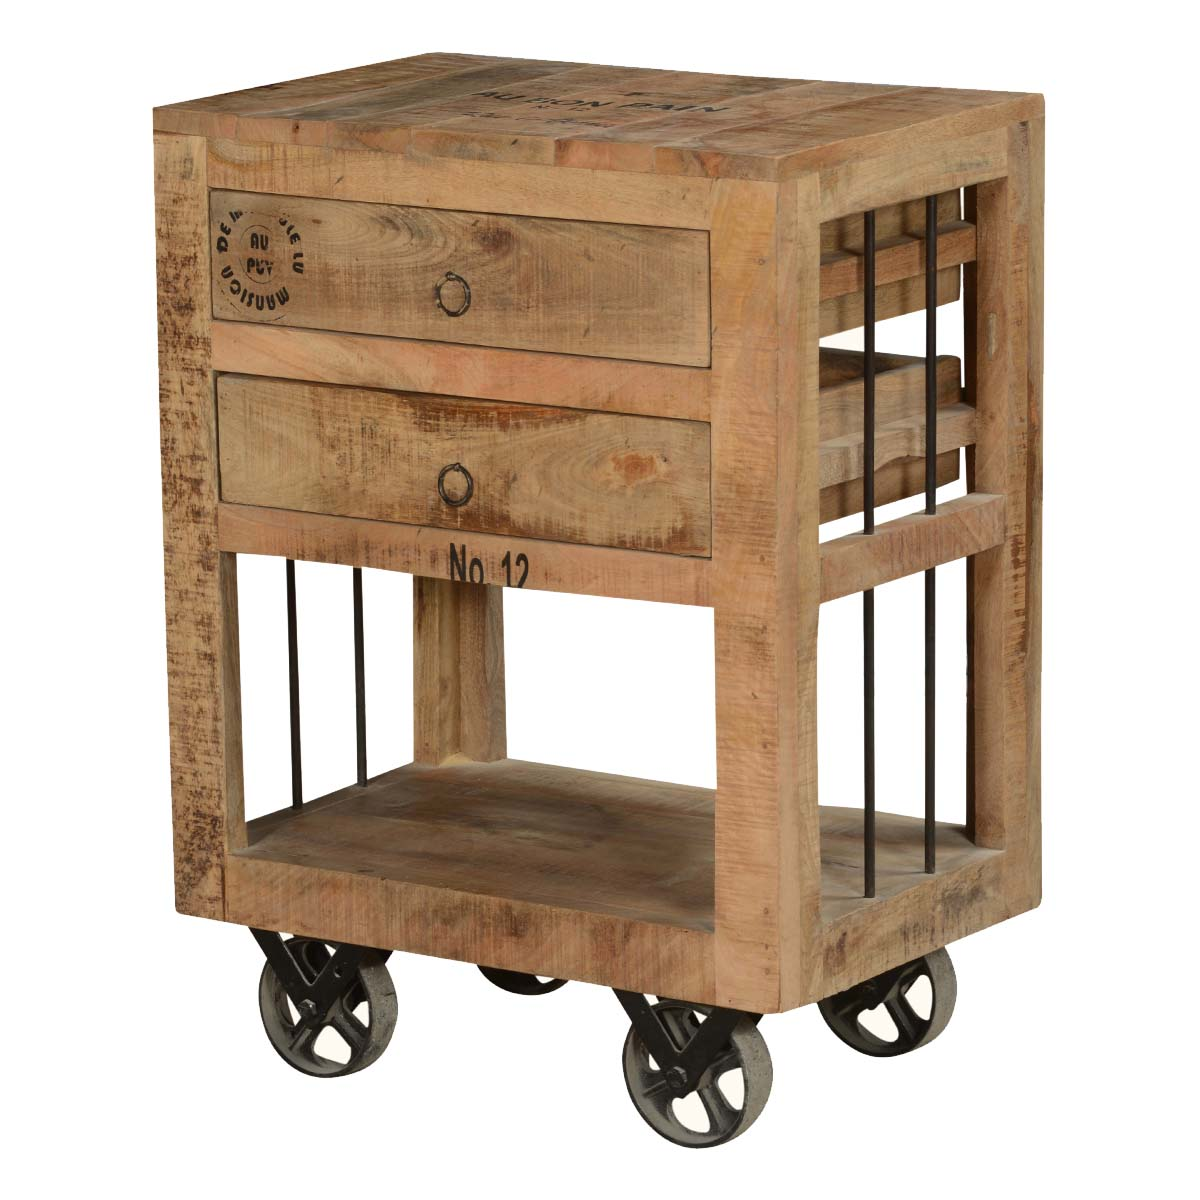 mid mod end table the outrageous best rustic style tables industrial solid wood drawer rolling wheels wooden crates value city furniture outdoor bistro set cotton cloth ethan